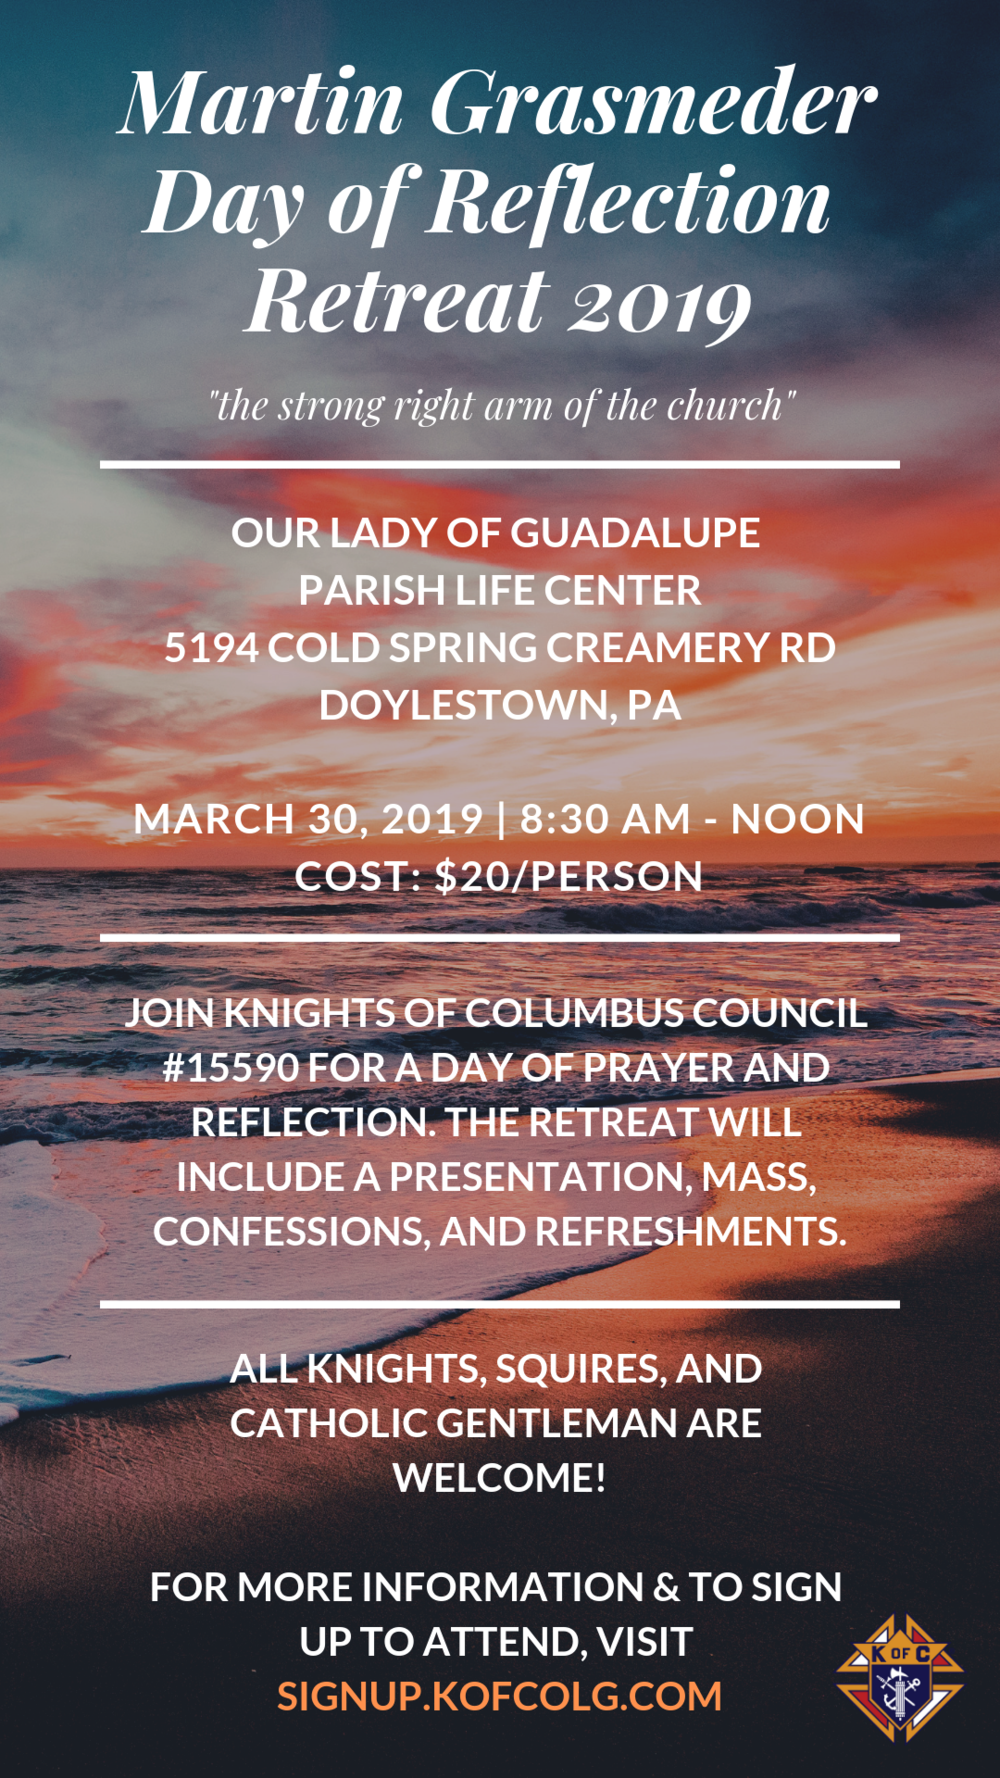 Martin Grasmeder Day of Reflection Retreat 2019 - Flyer V2.png